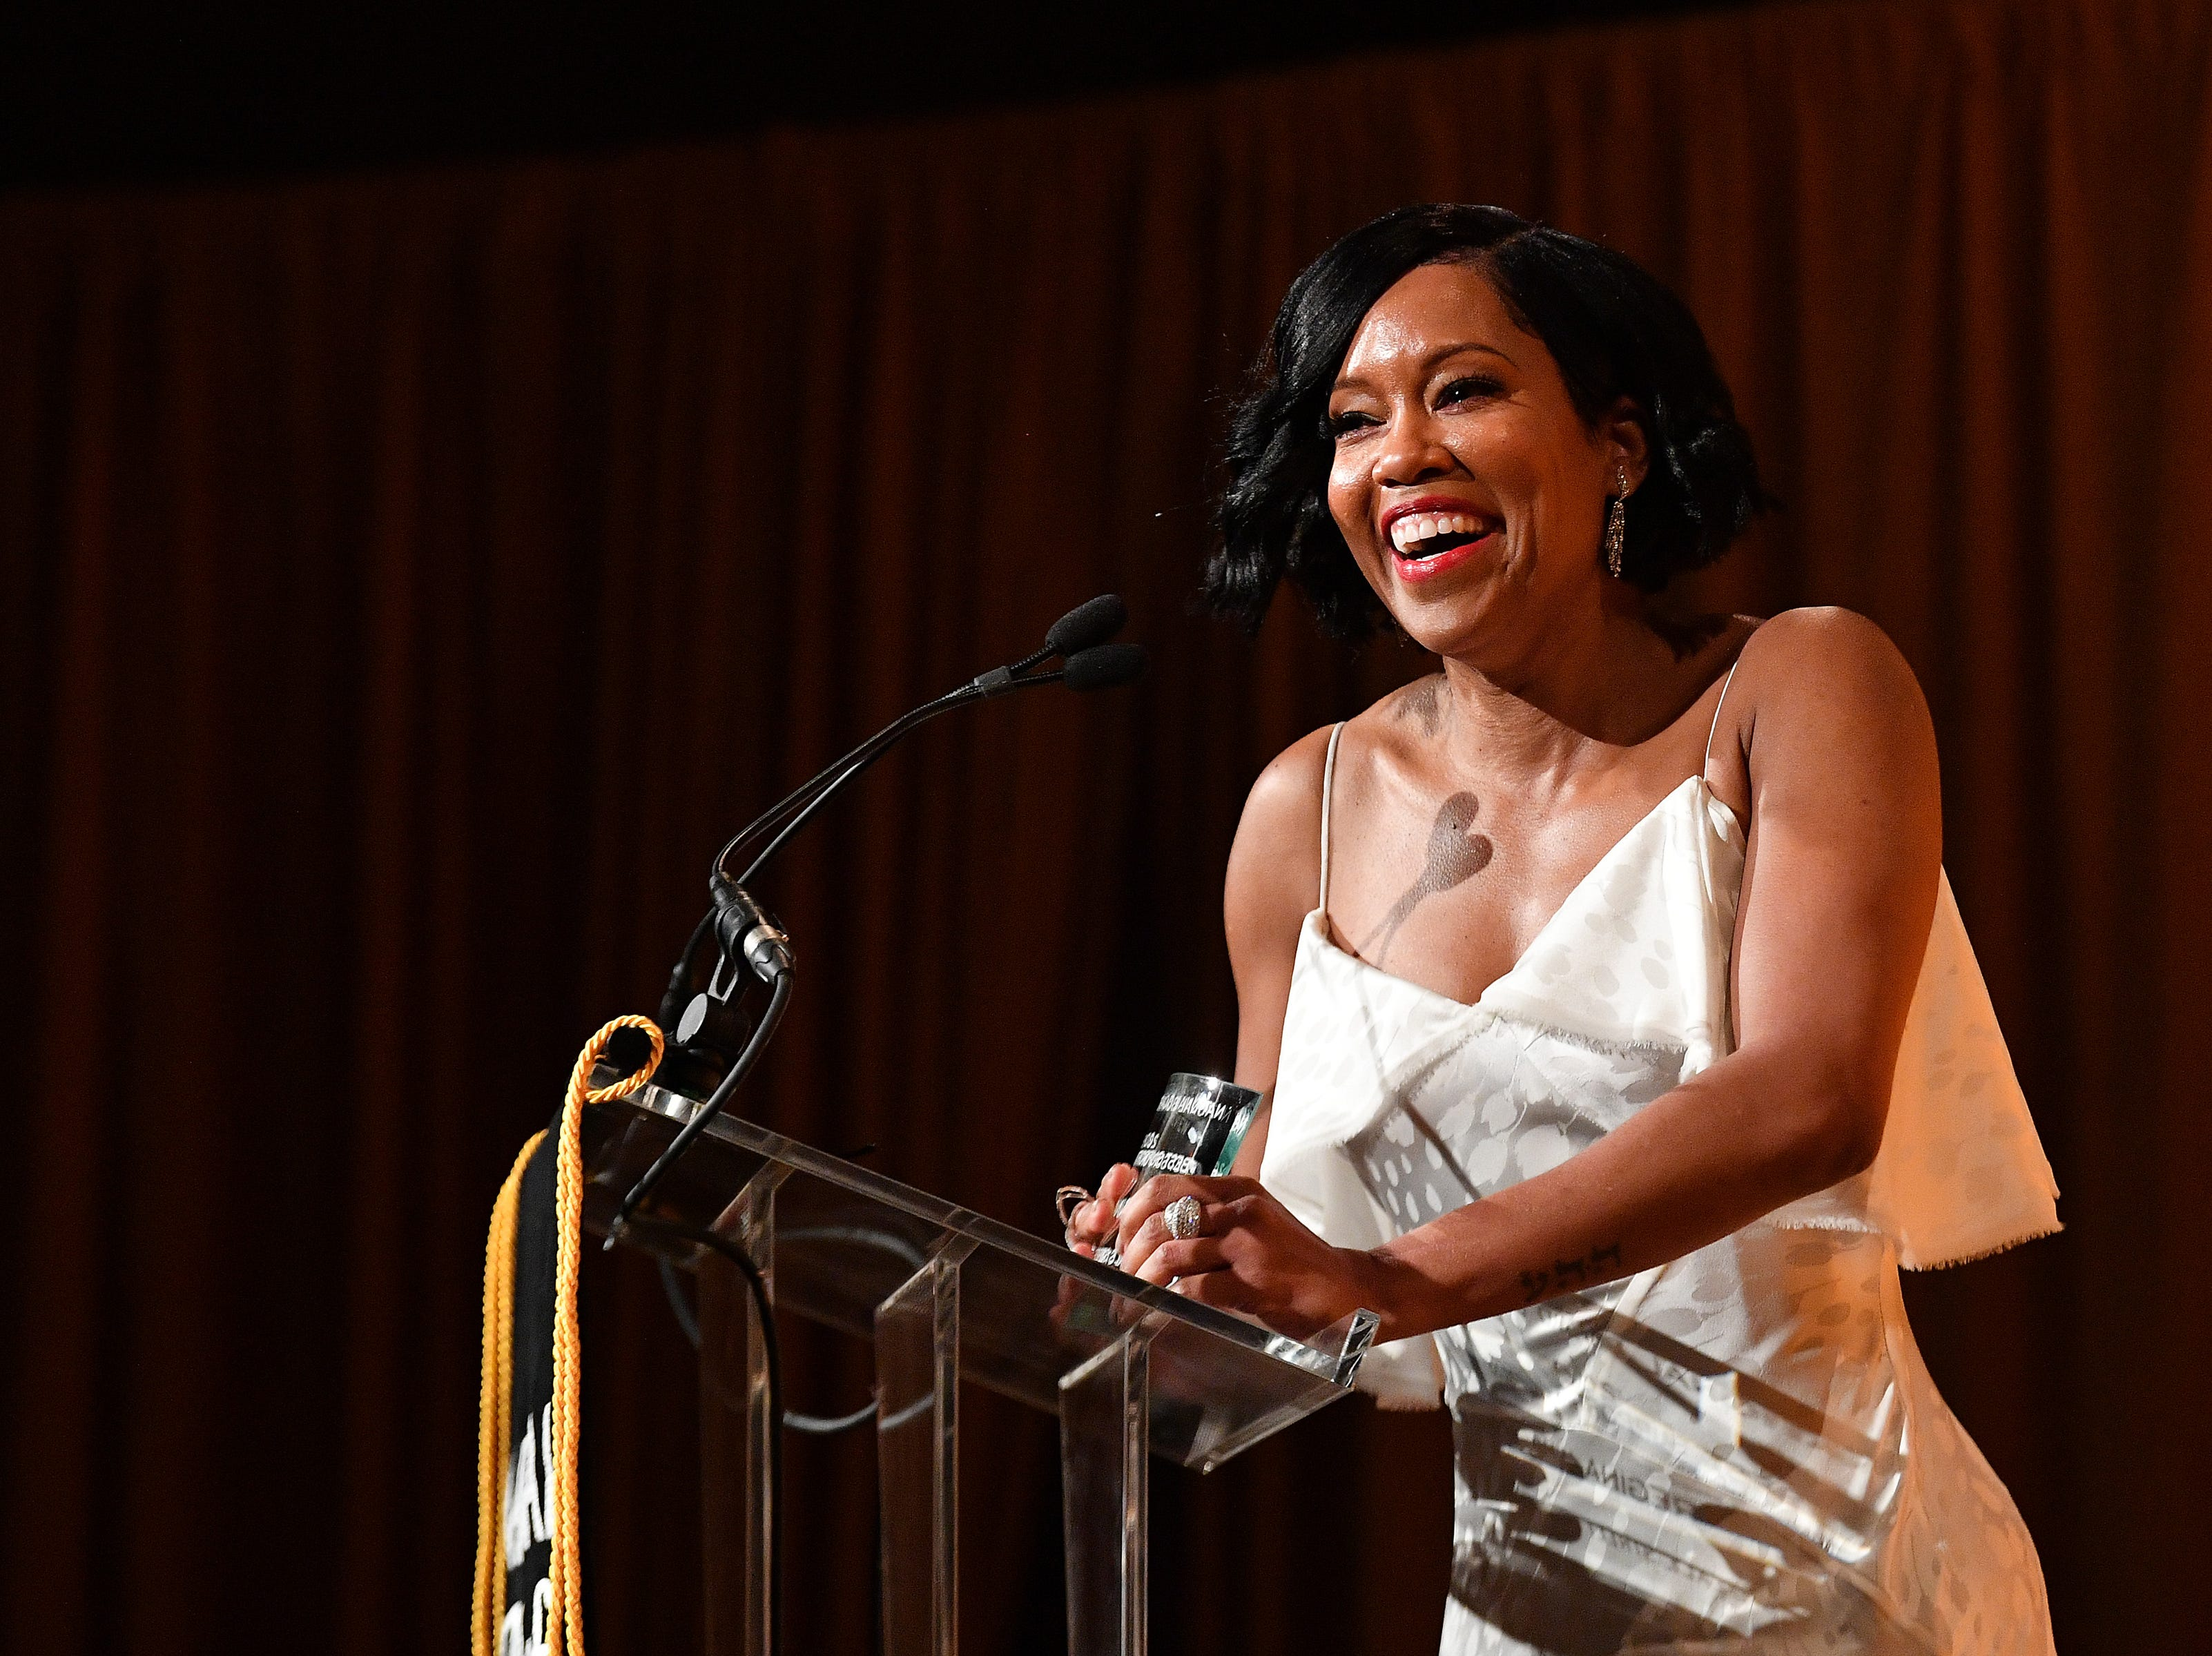 NEW YORK, NY - JANUARY 08:  Regina King accepts the Best Supporting Actress award for If Beale Street Could Talk onstage during The National Board of Review Annual Awards Gala at Cipriani 42nd Street on January 8, 2019 in New York City.  (Photo by Dia Dipasupil/Getty Images for National Board of Review) ORG XMIT: 775277327 ORIG FILE ID: 1079457000